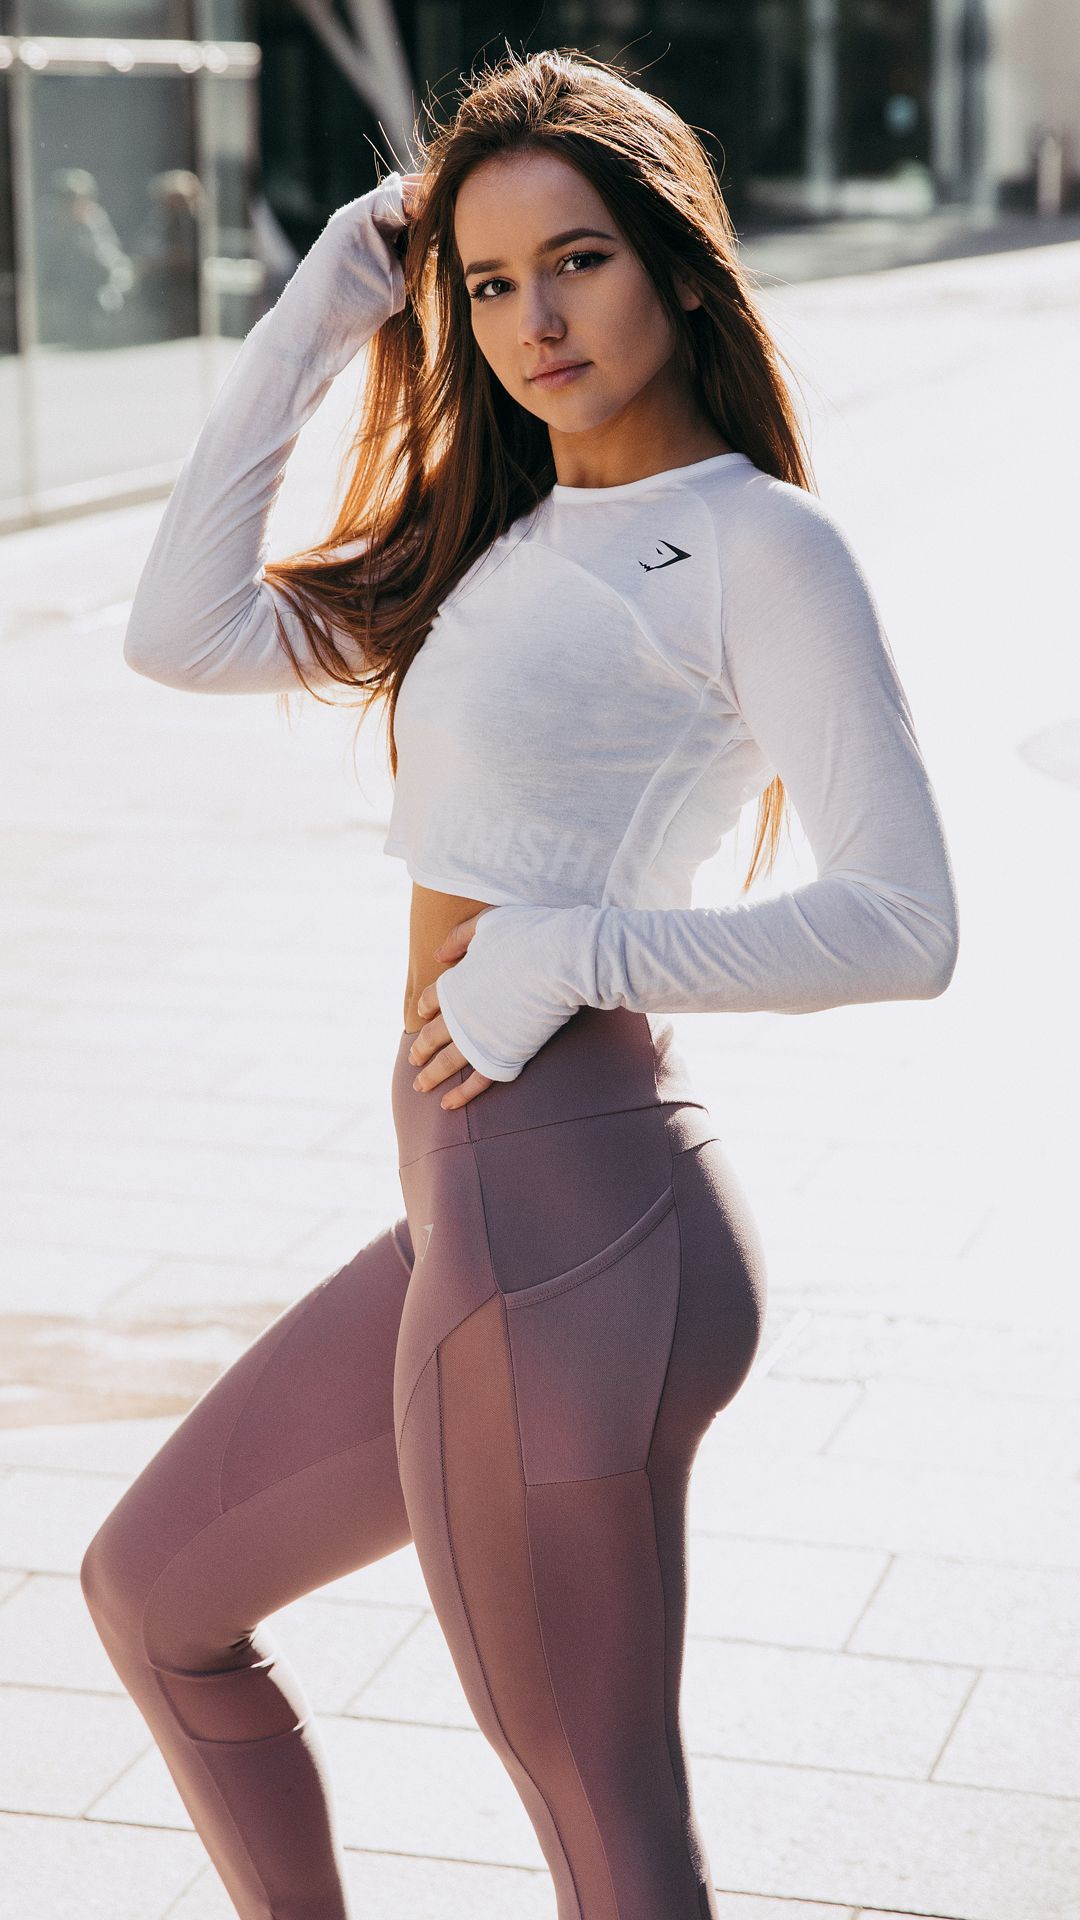 9cf9da25d1e94 The Gymshark Women's Sleek Aspire Leggings are the unbelievably stylish  wardrobe addition you have been looking for. #LeggingsPerfect